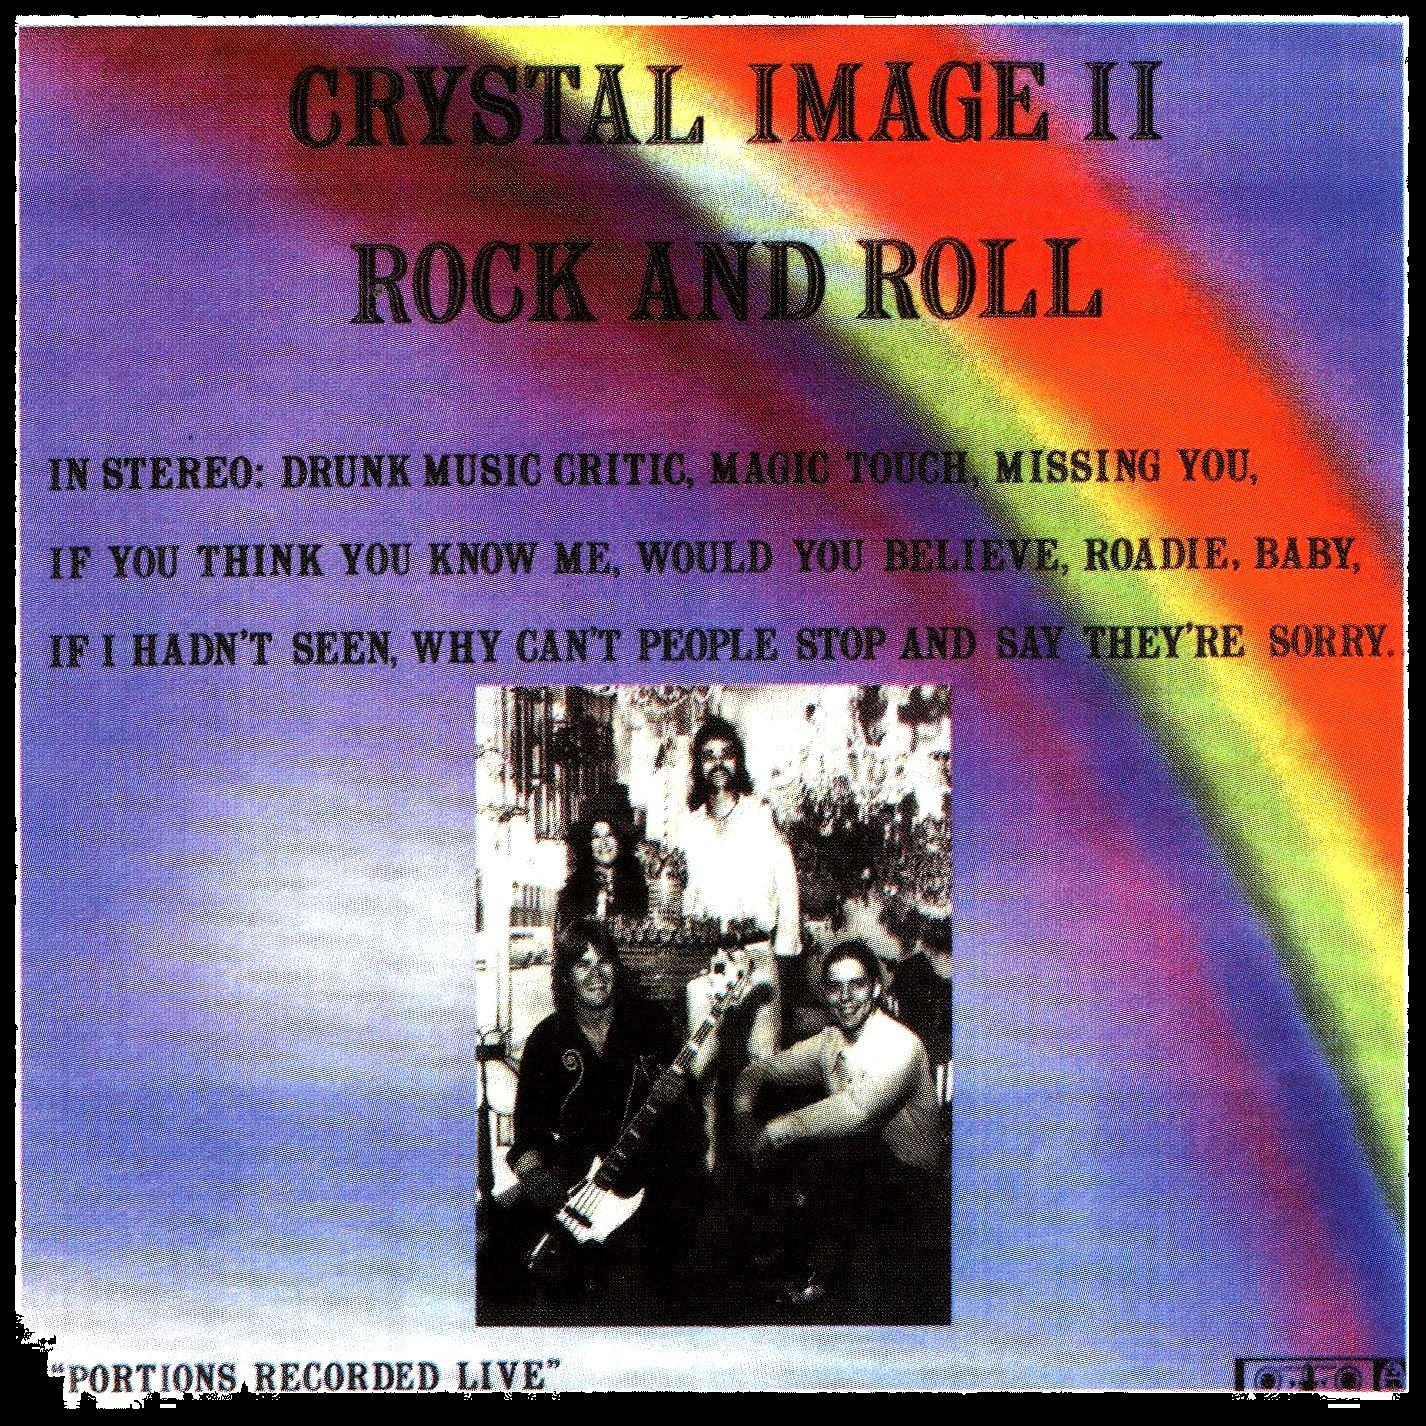 Crystal Wise Gilbert Porn - B1 Gimme That Rock And Roll B2 Here Today And Gone Tomorrow (Street  Musician) B3 Half of a Man (Patty's Song) B4 Jivin' Lady B5 Midnite Porno  Flick